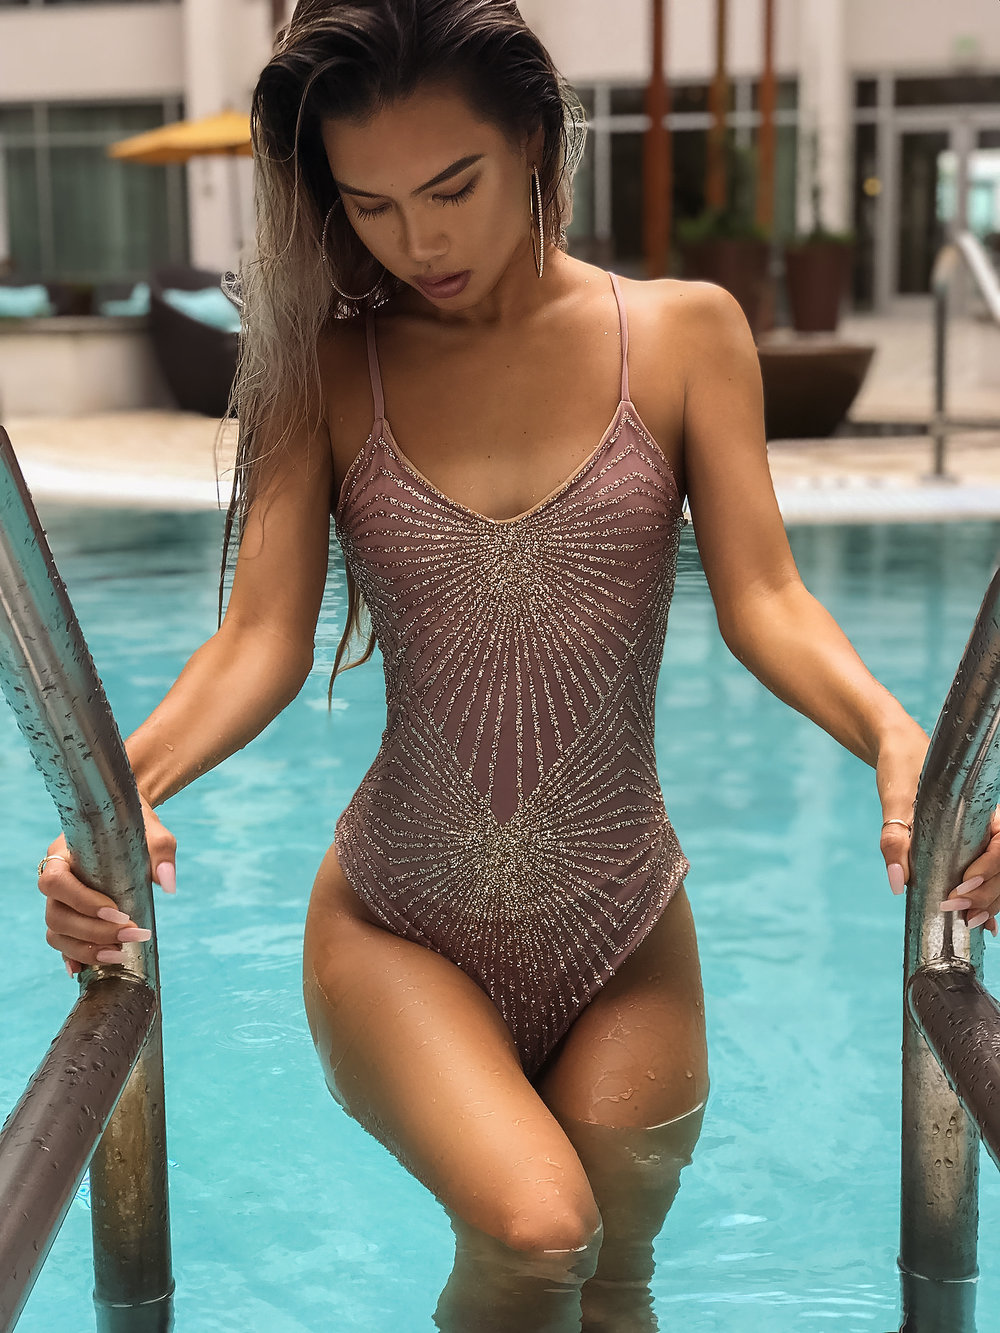 Luxe Swim - The CheyenneKimora Luxe Swim is a vacation must have. It is embellished with a glitter print, and are double lined for comfort. #handmade